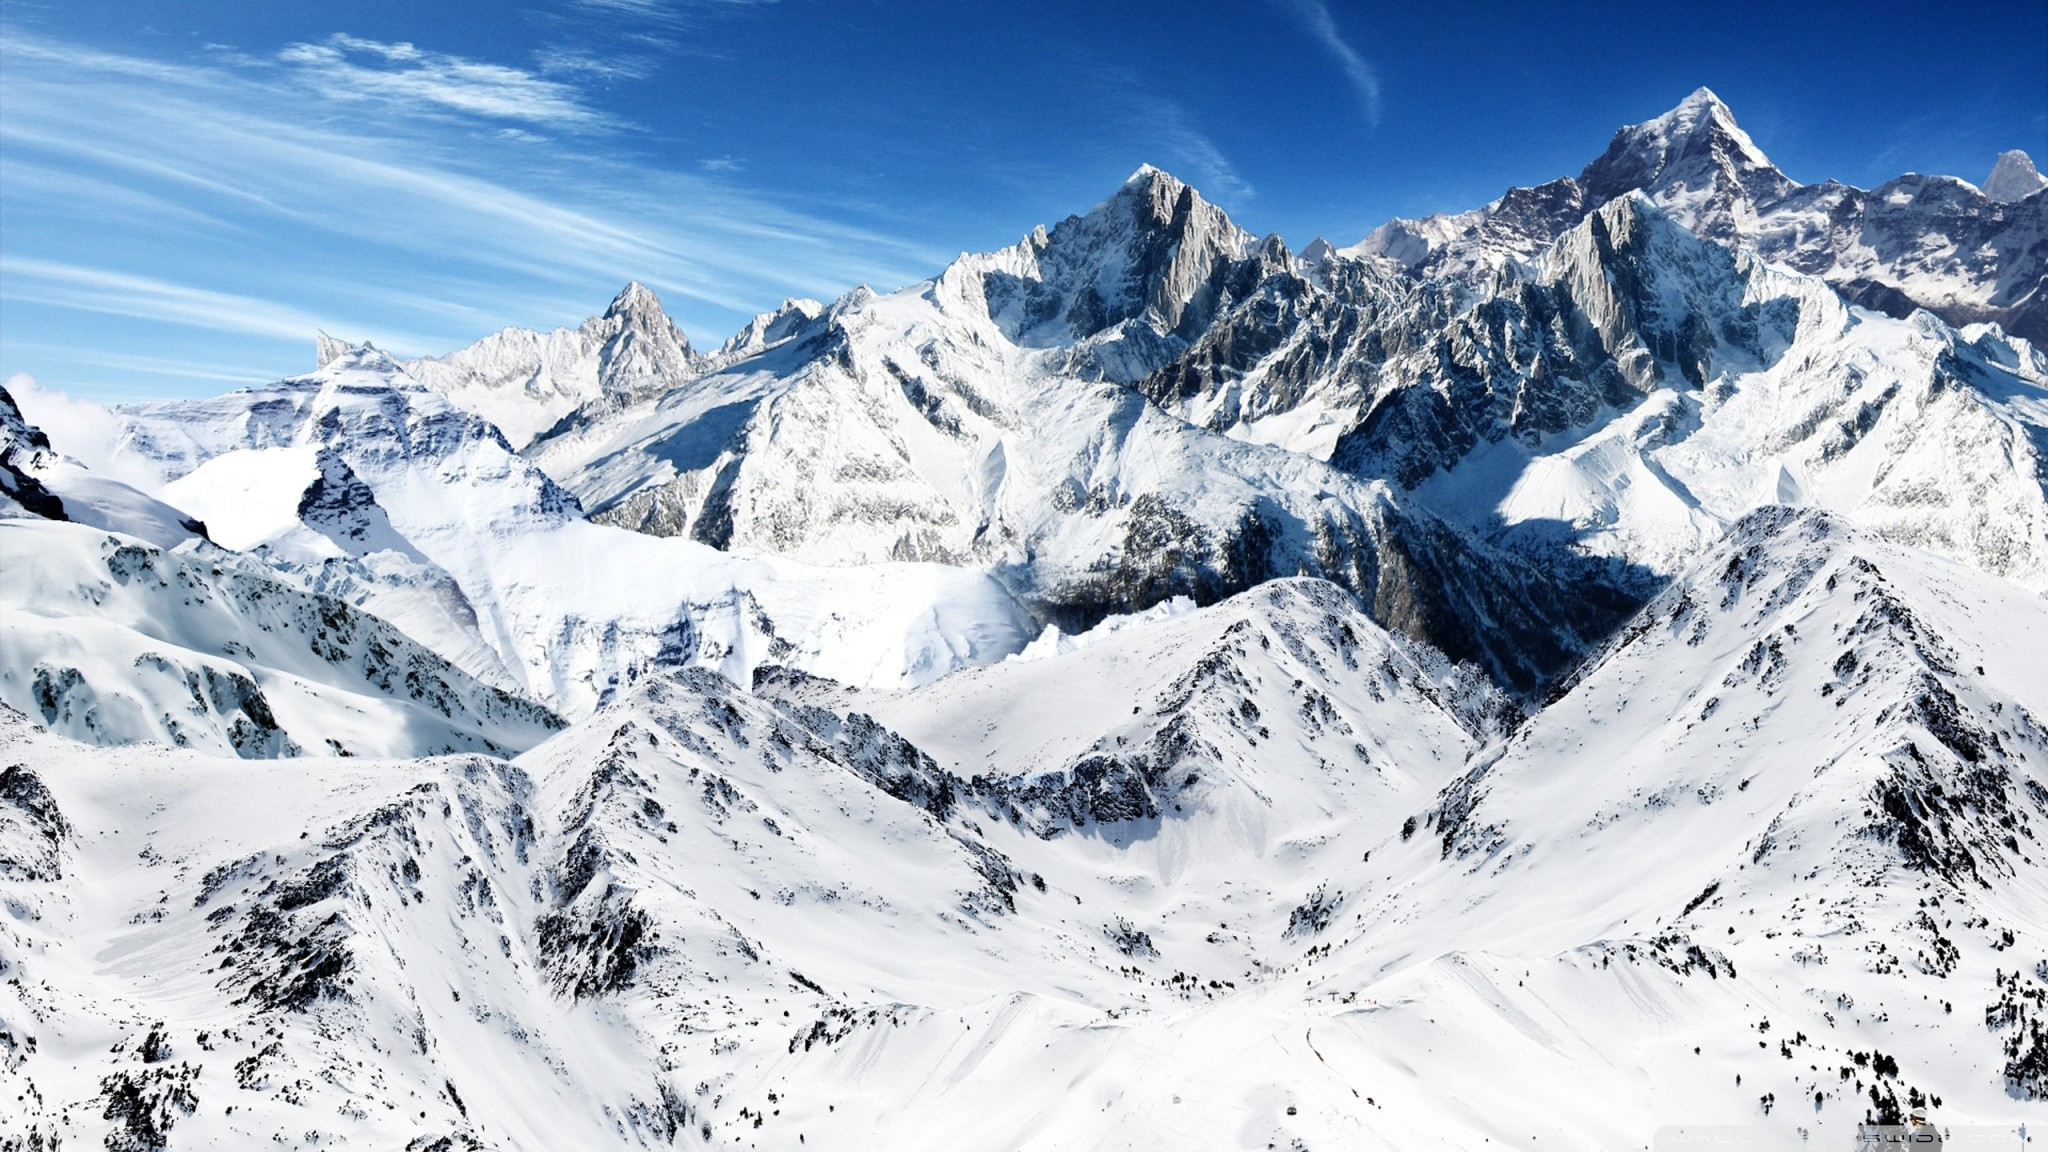 Snow Mountain Wallpapers High Quality Resolution As Wallpaper HD